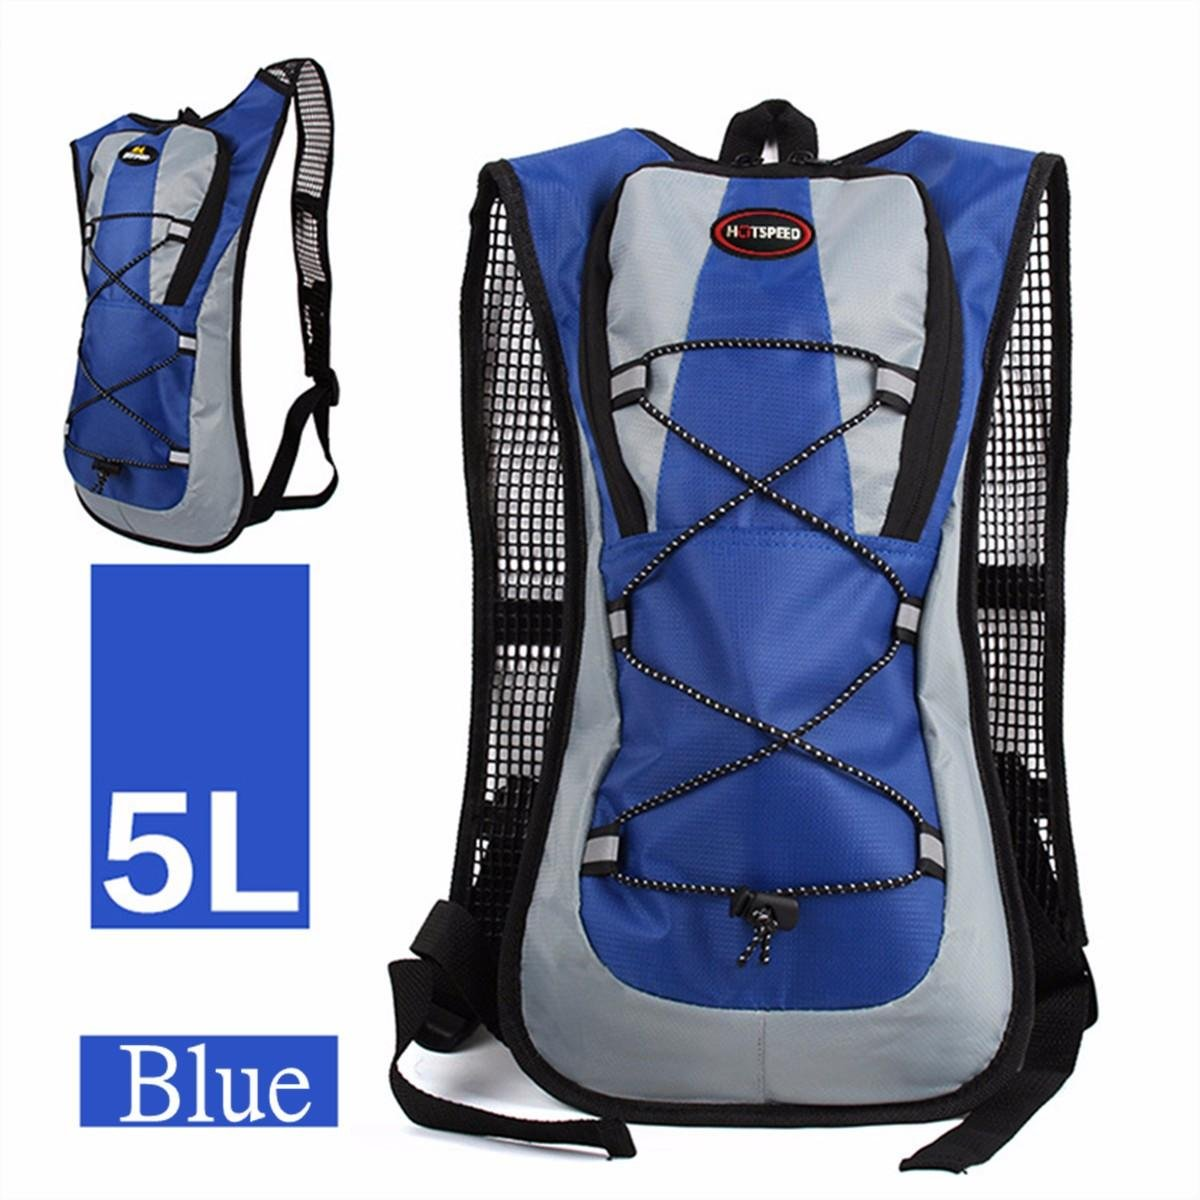 IPRee 5L Running Hydration Backpack Rucksack 2L Straw Water Bladder Bag For Hiking Climbing - Blue